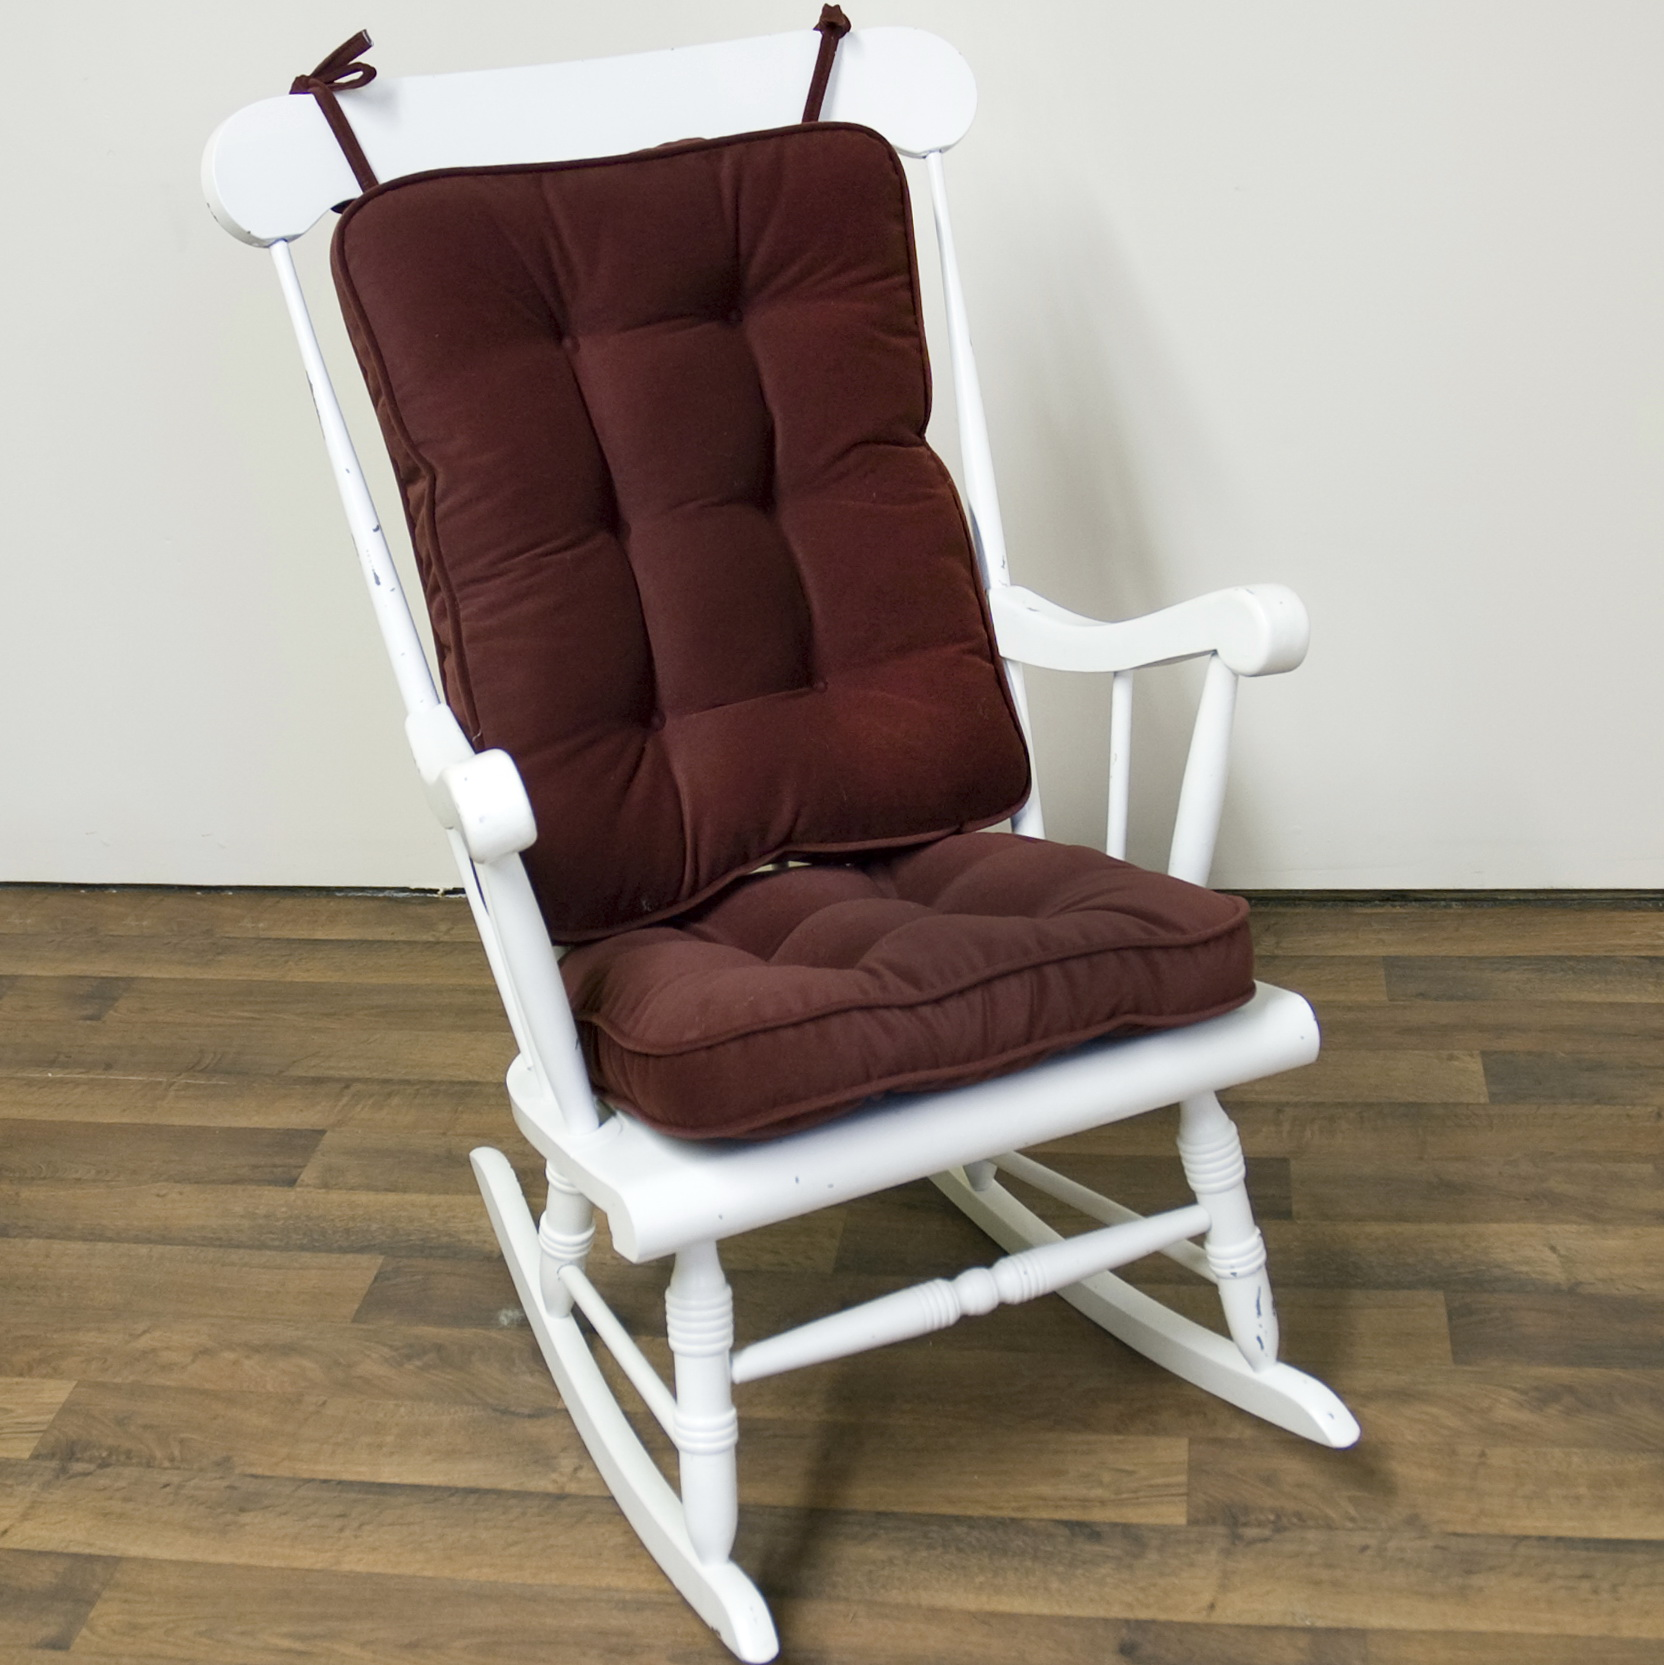 Replacement Cushions For Glider Rocking Chair Home